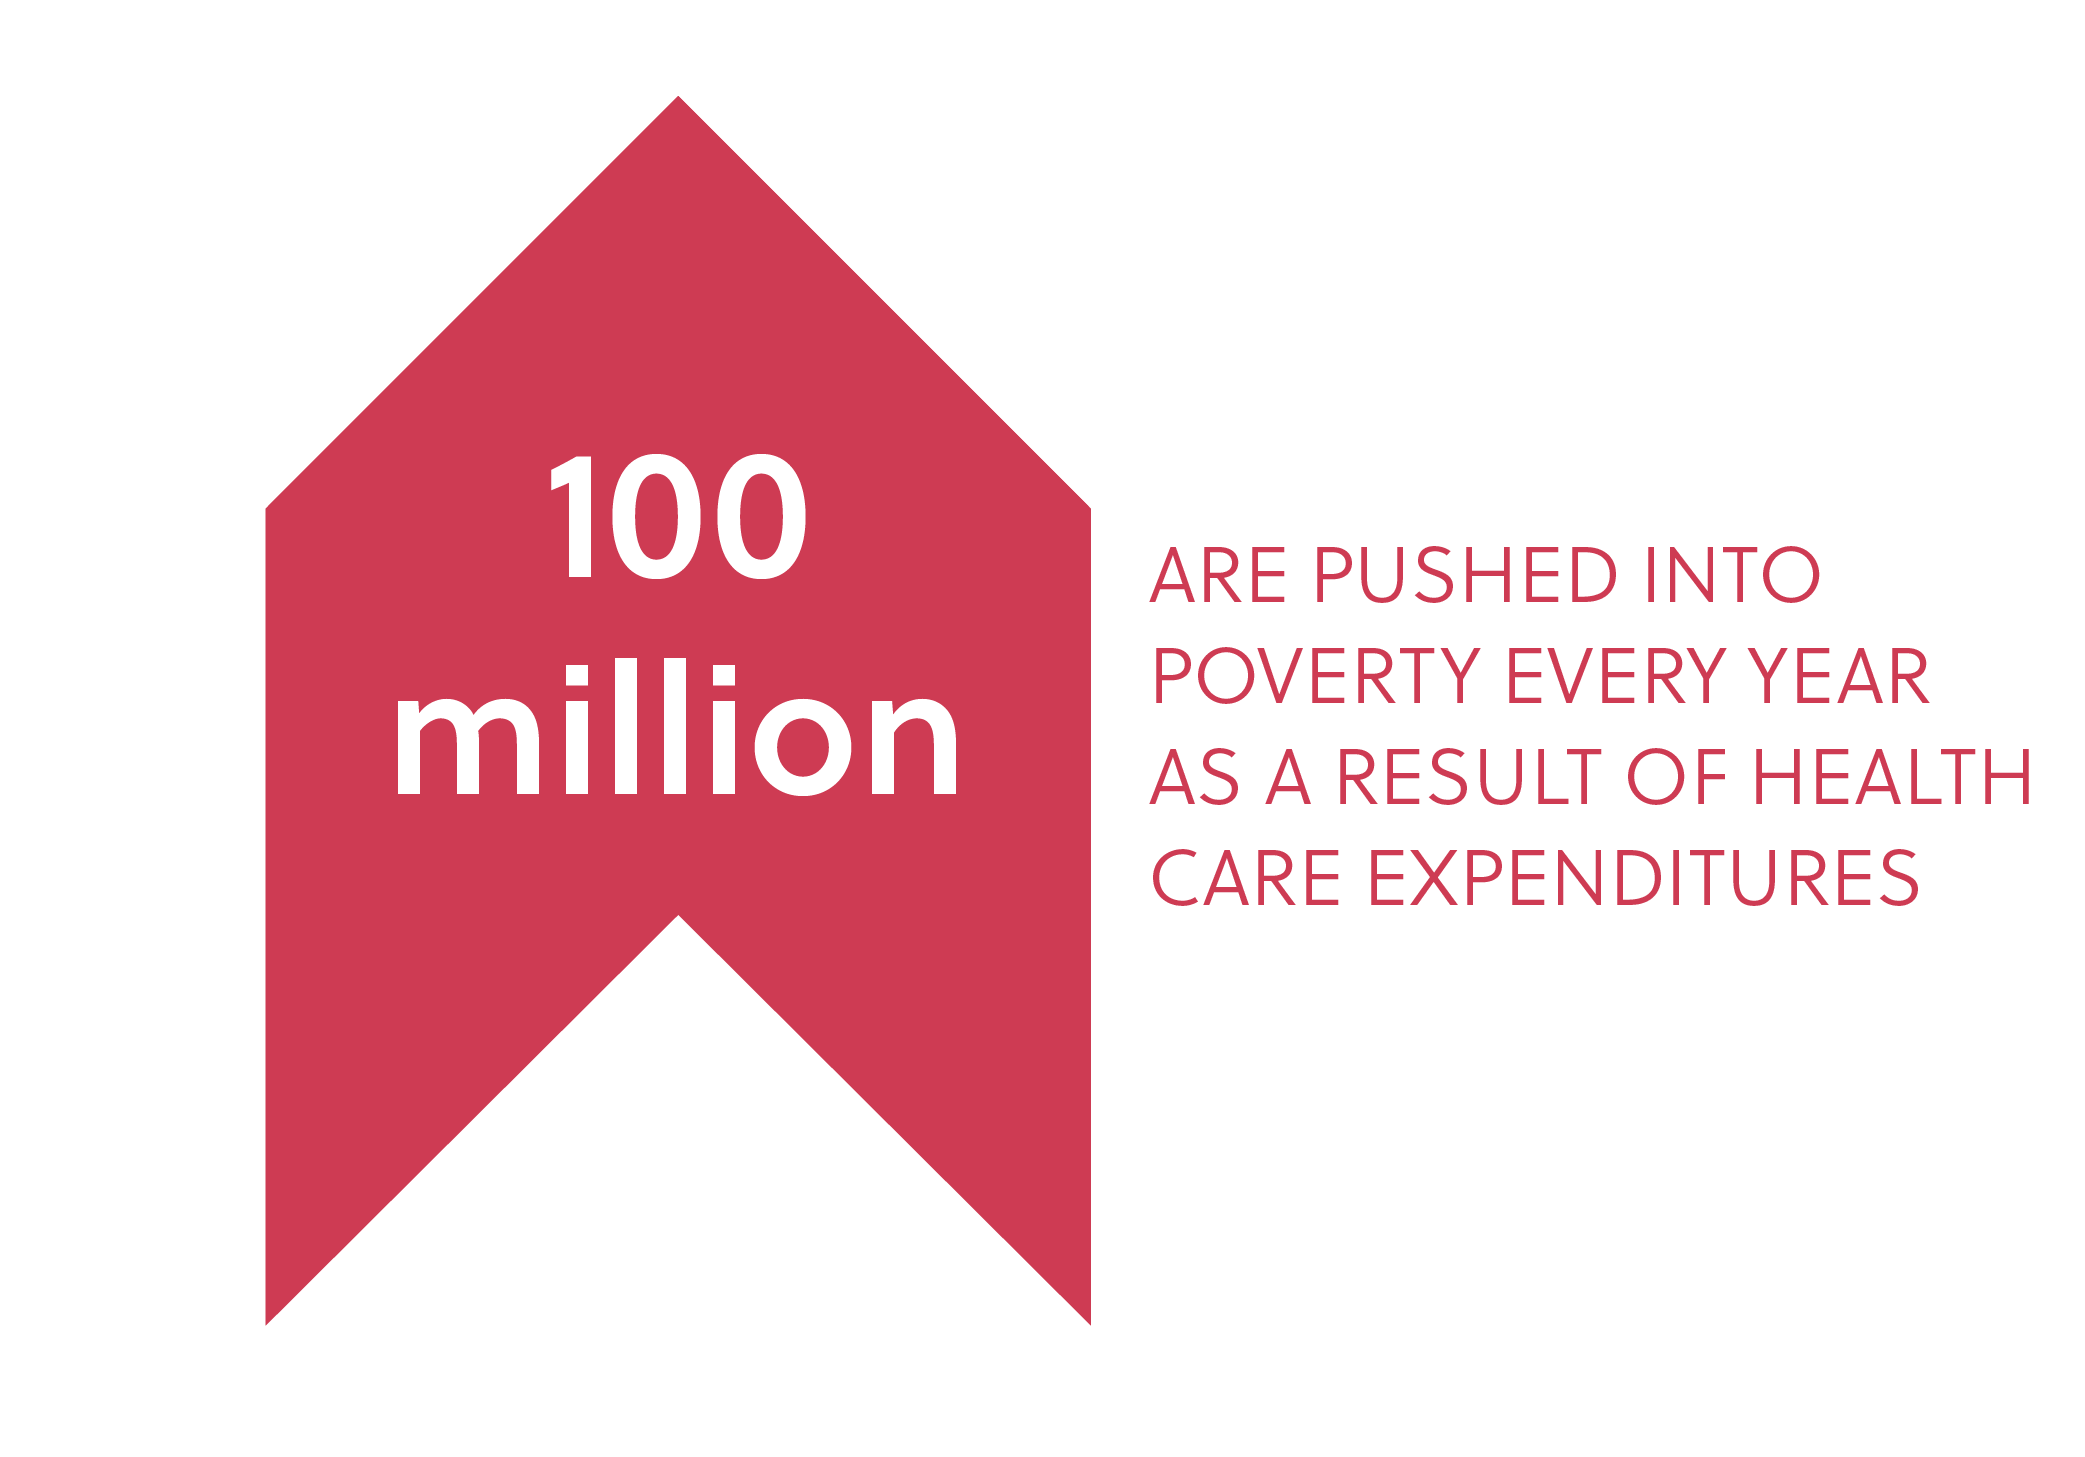 100 million people are pushed into poverty every year as a result of health care expenditures